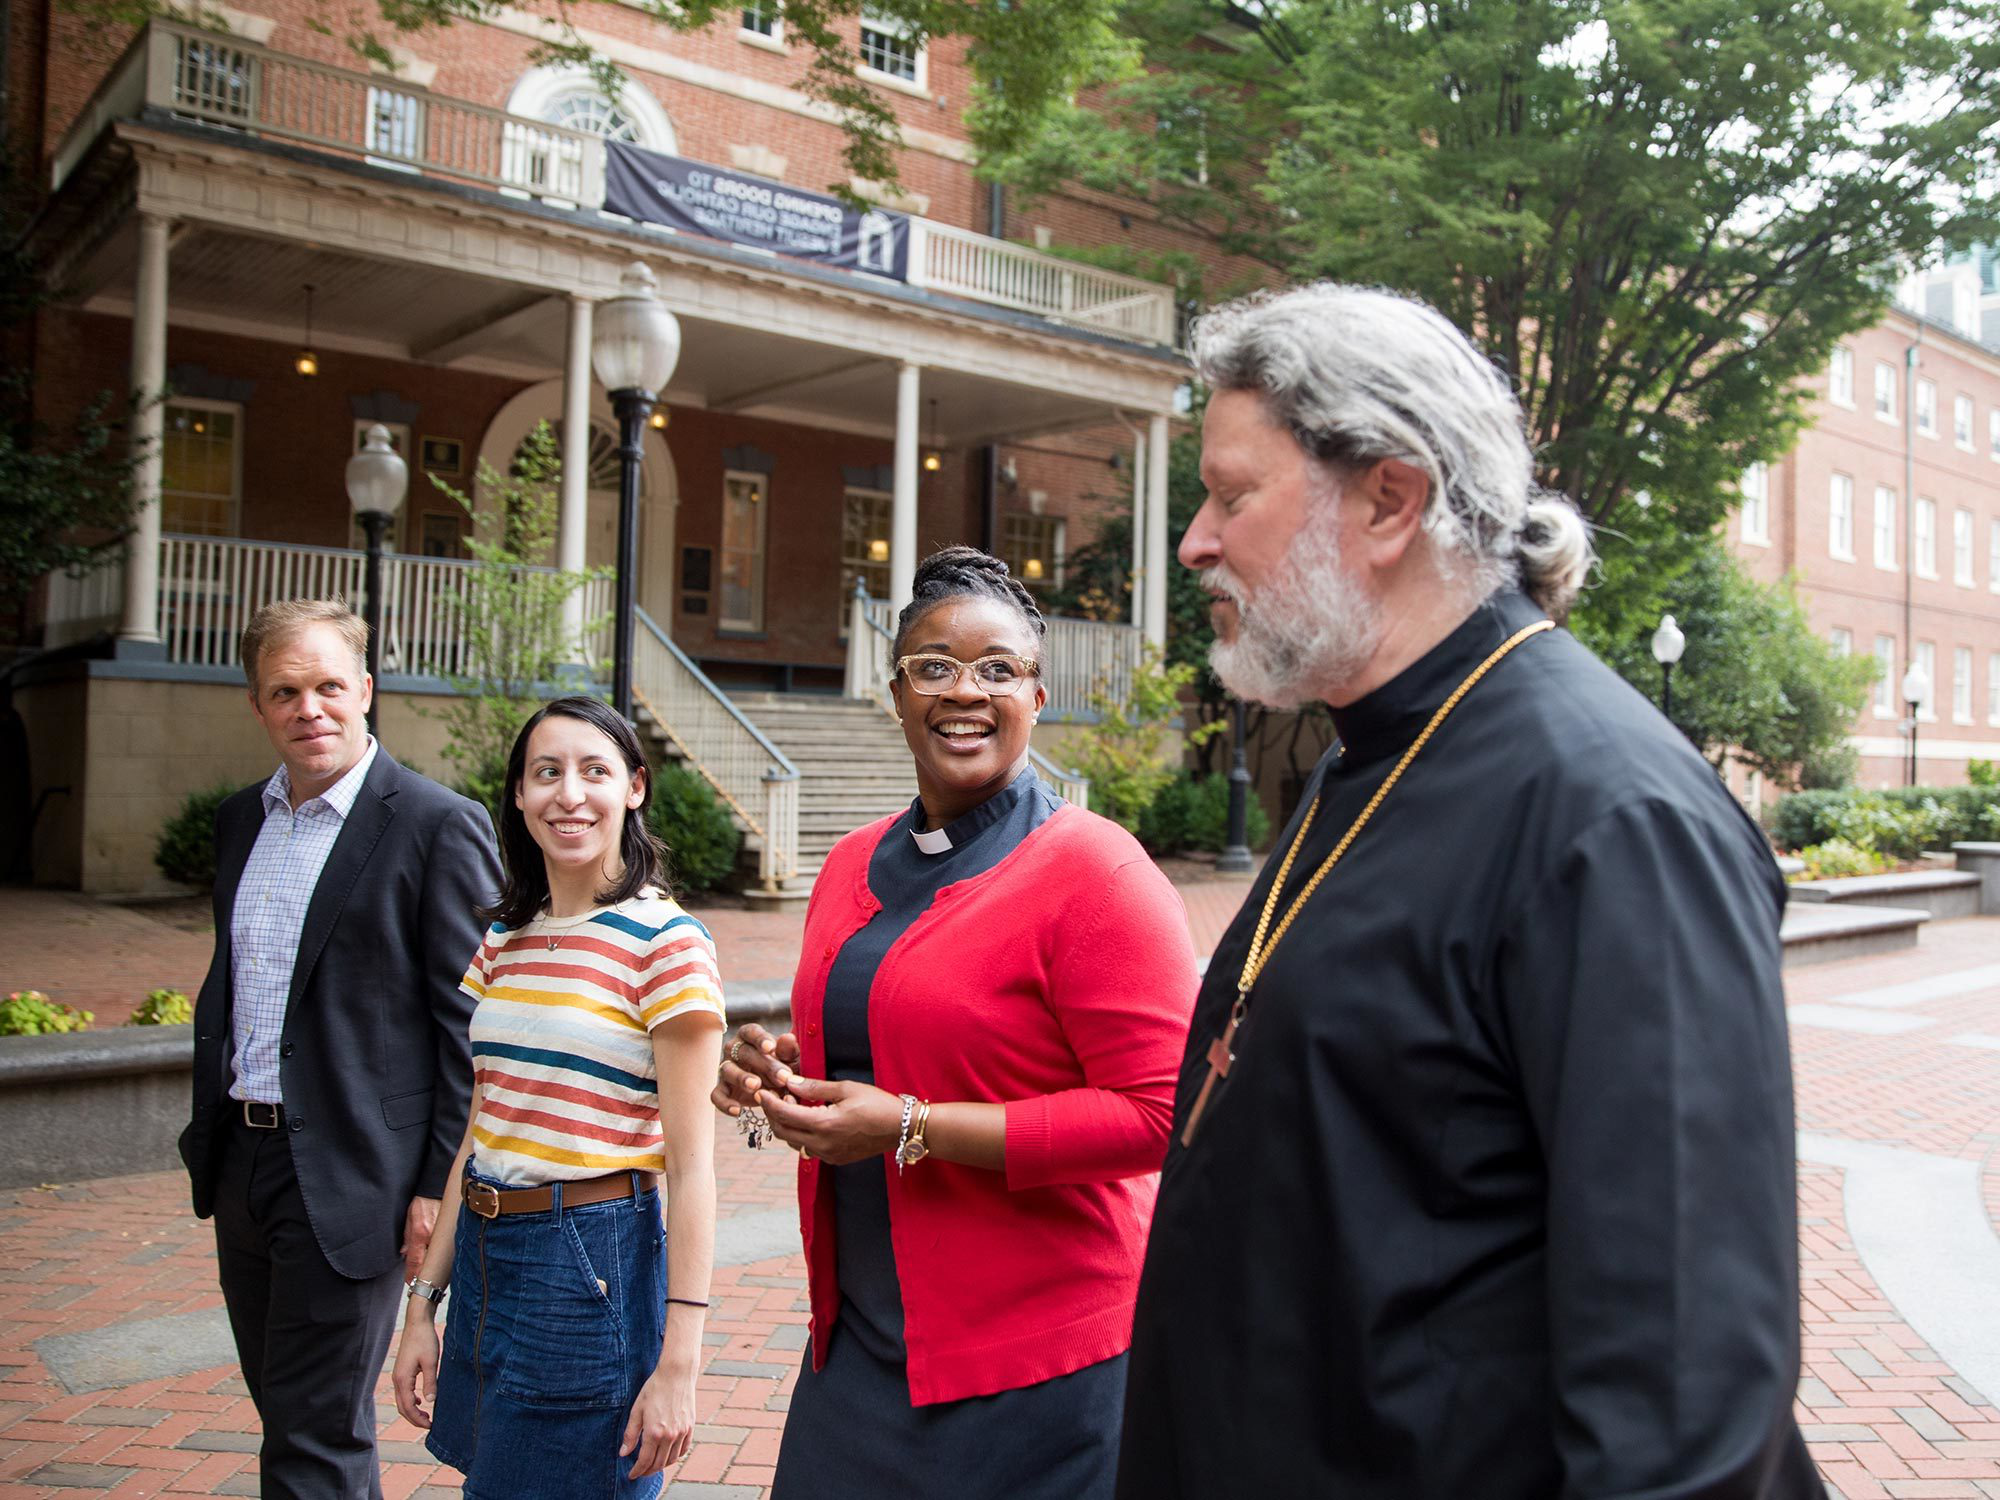 Chaplains walk with a student on campus